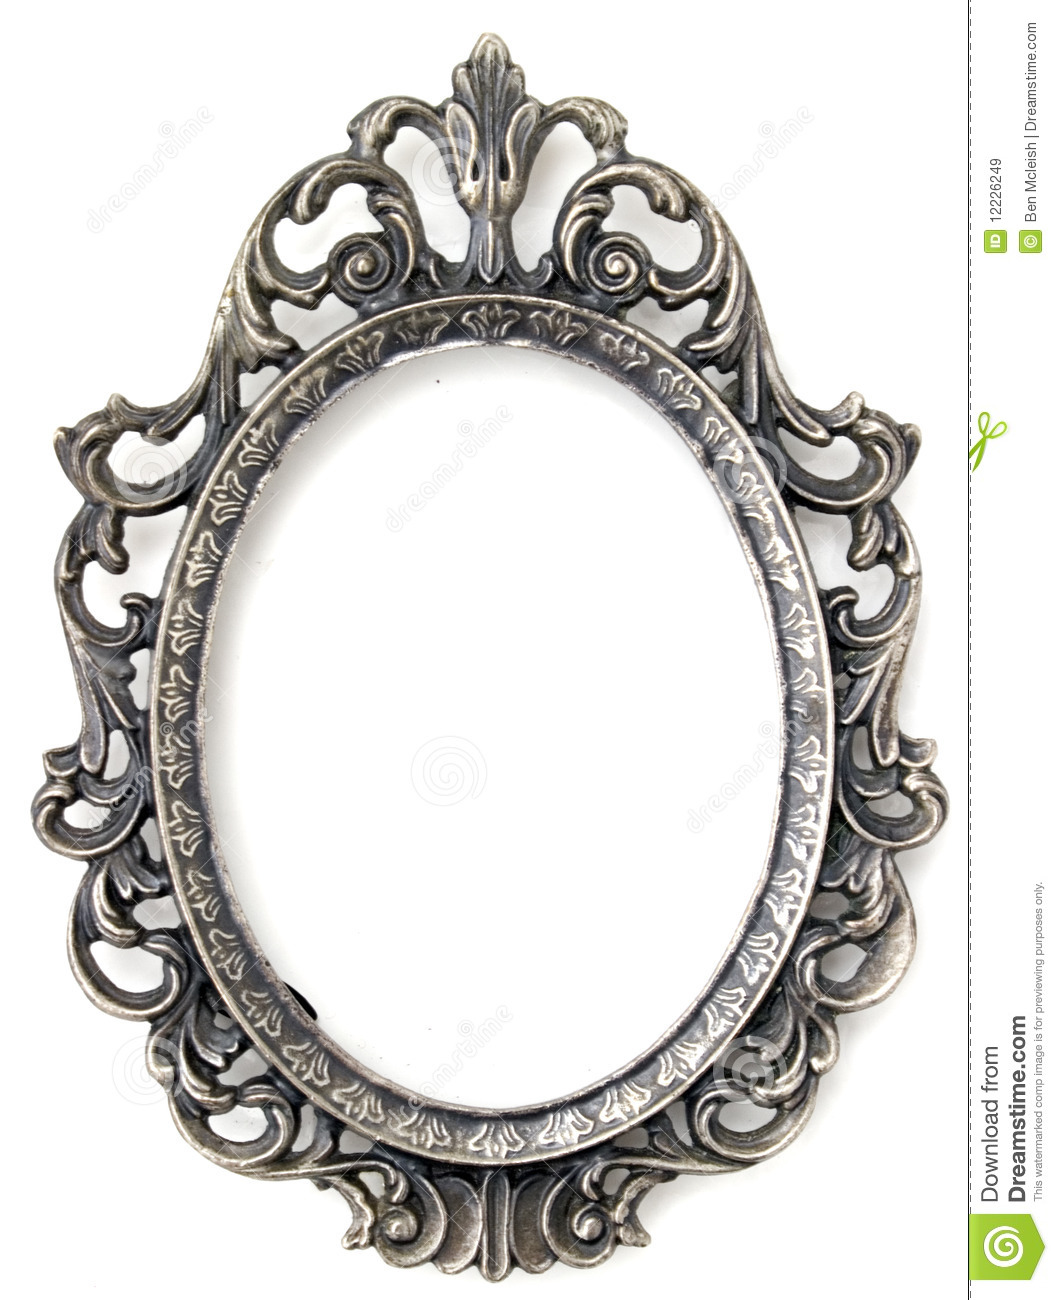 Silver floral frame stock image. Image of detail, photo - 12226249